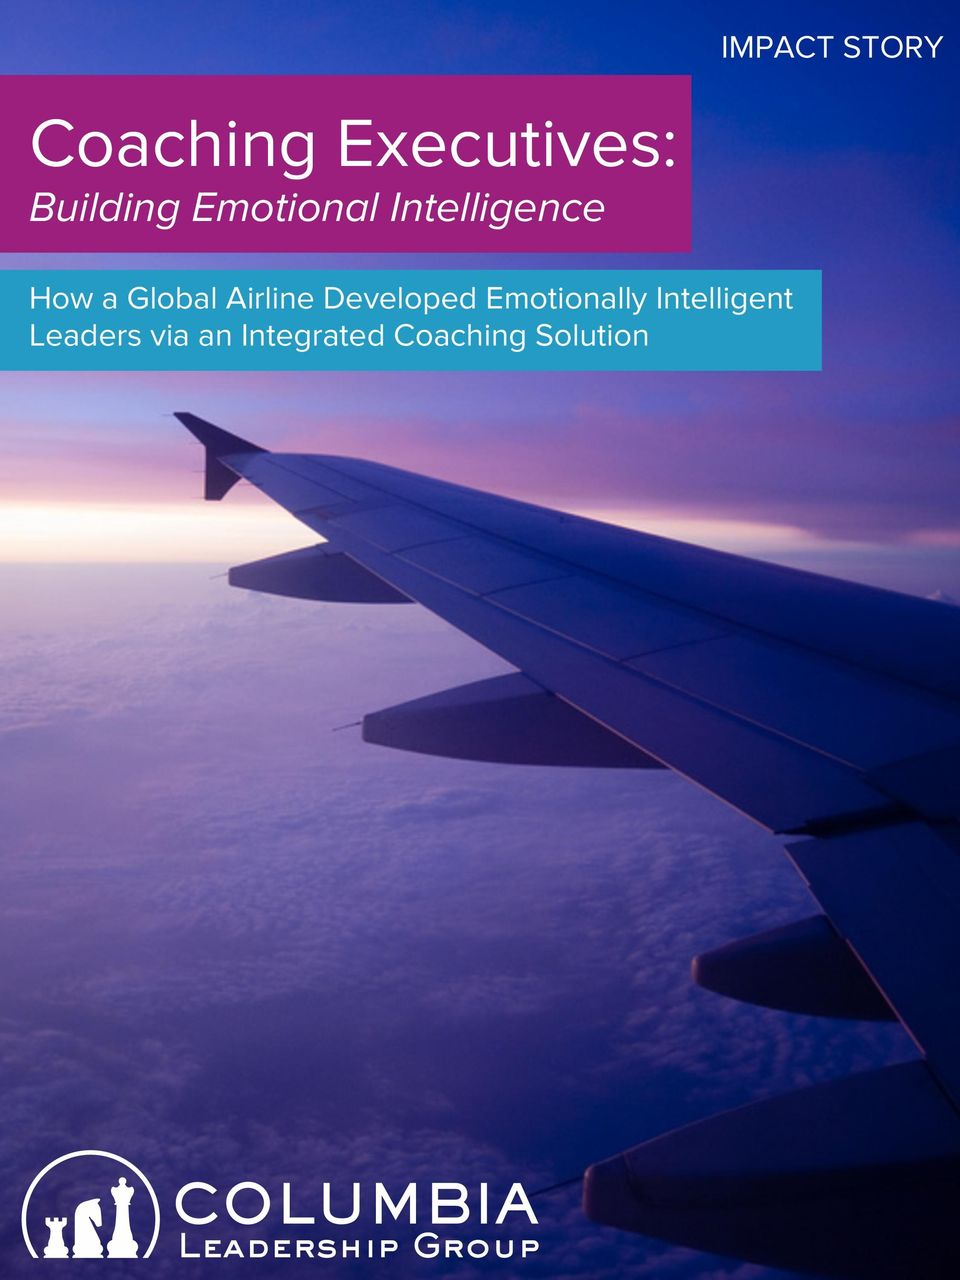 Global Airline Developed Emotionally